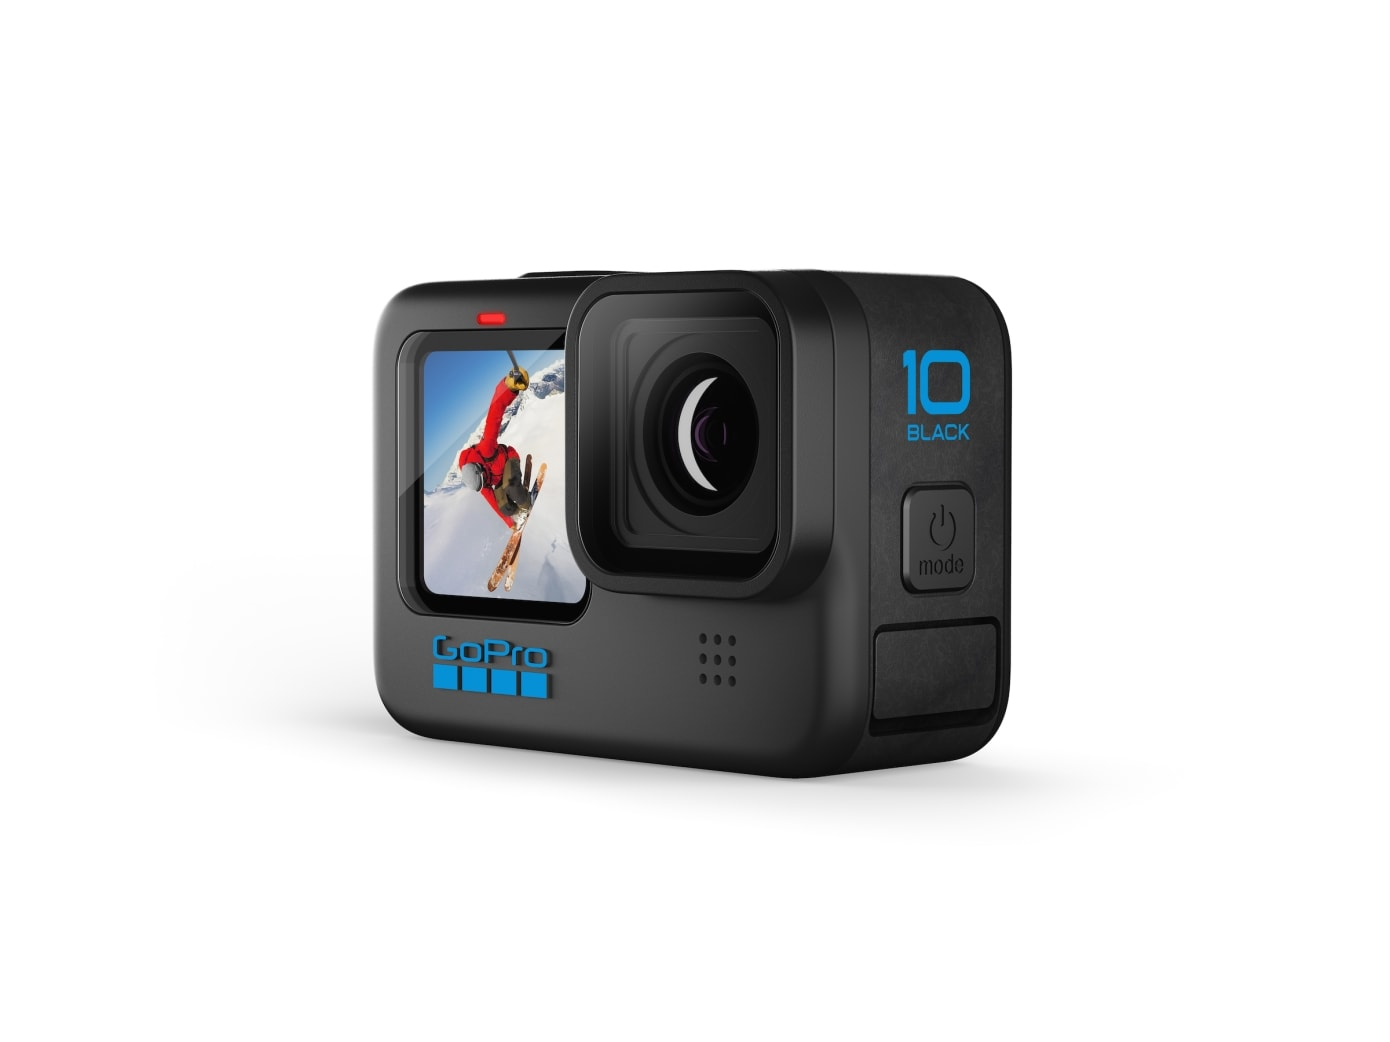 The GoPro Hero10 Black action camera features a new processor.